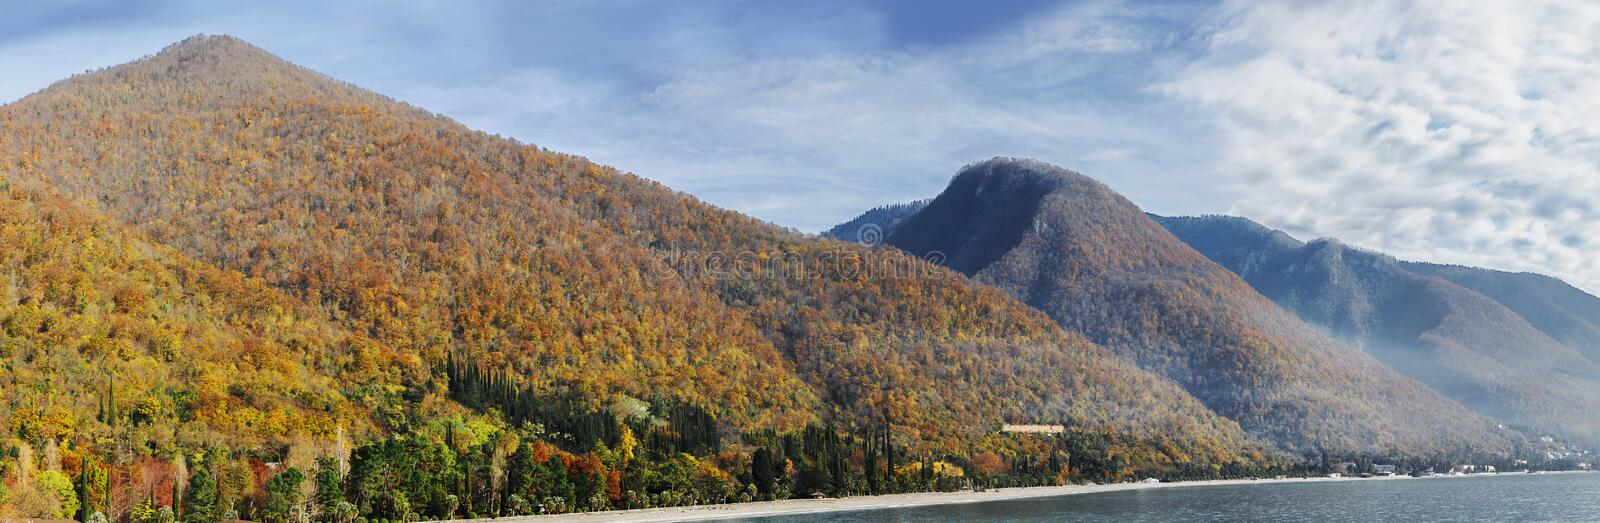 Panorama of the autumn haze-covered hills and a cloudy blue sky. Hilly colored forests natural autumn landscape in orange, red aut stock image